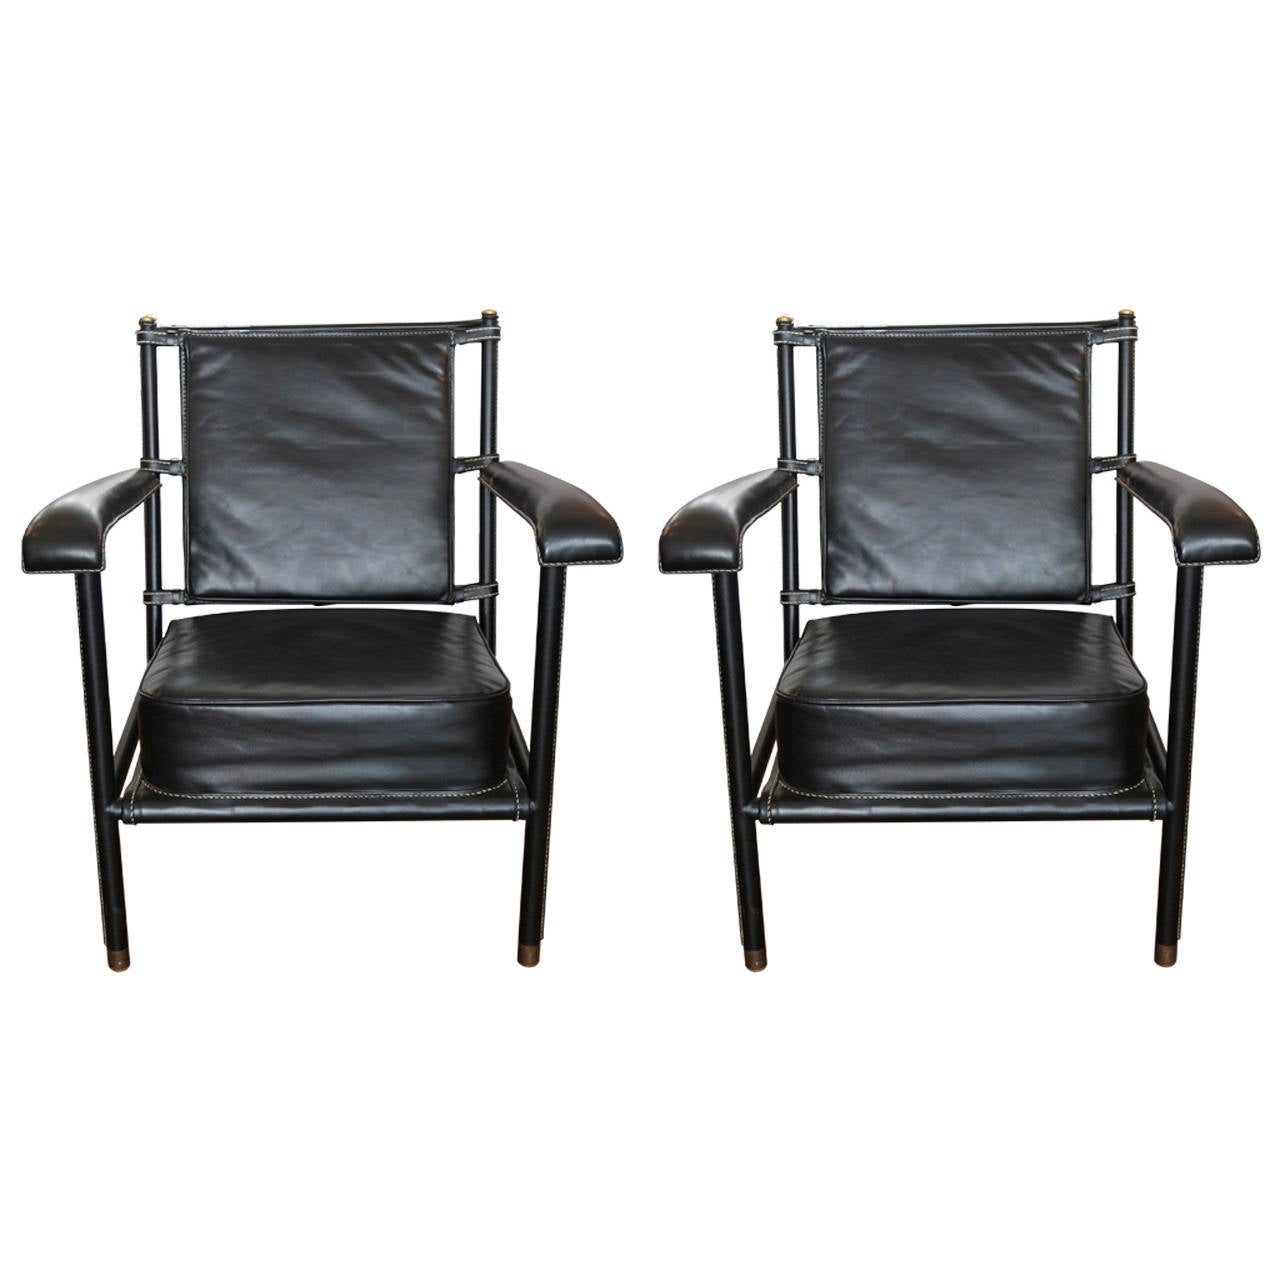 Jacques Adnet armchairs, 1950s